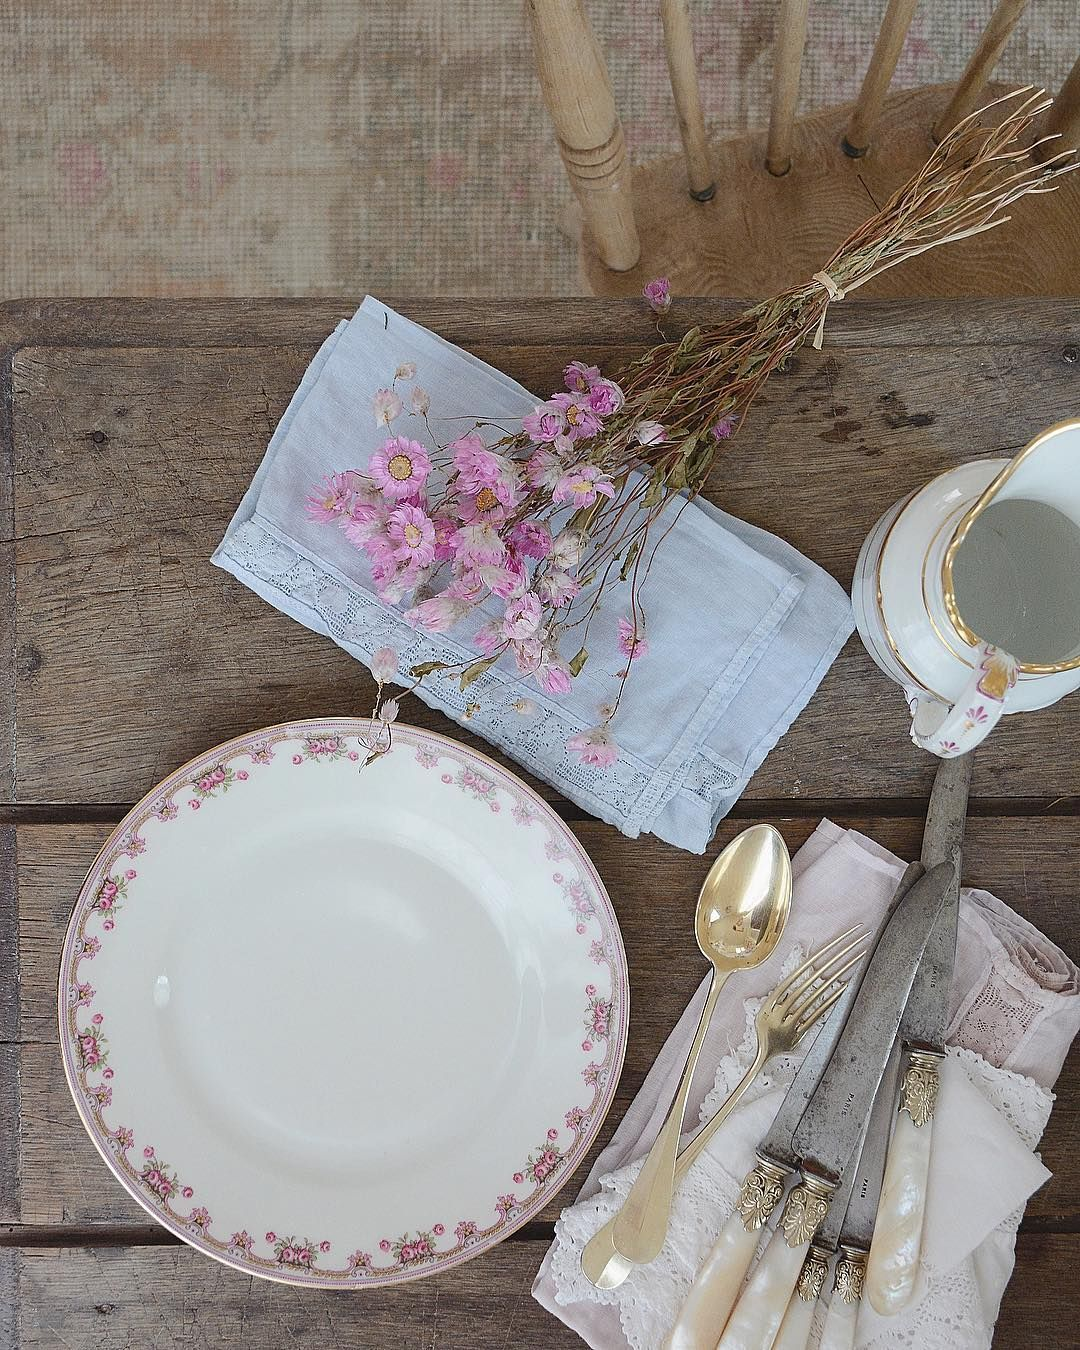 Shabby Whites Ig Pretty Tablescapes Romantic Kitchen Rachel Ashwell Shabby Chic